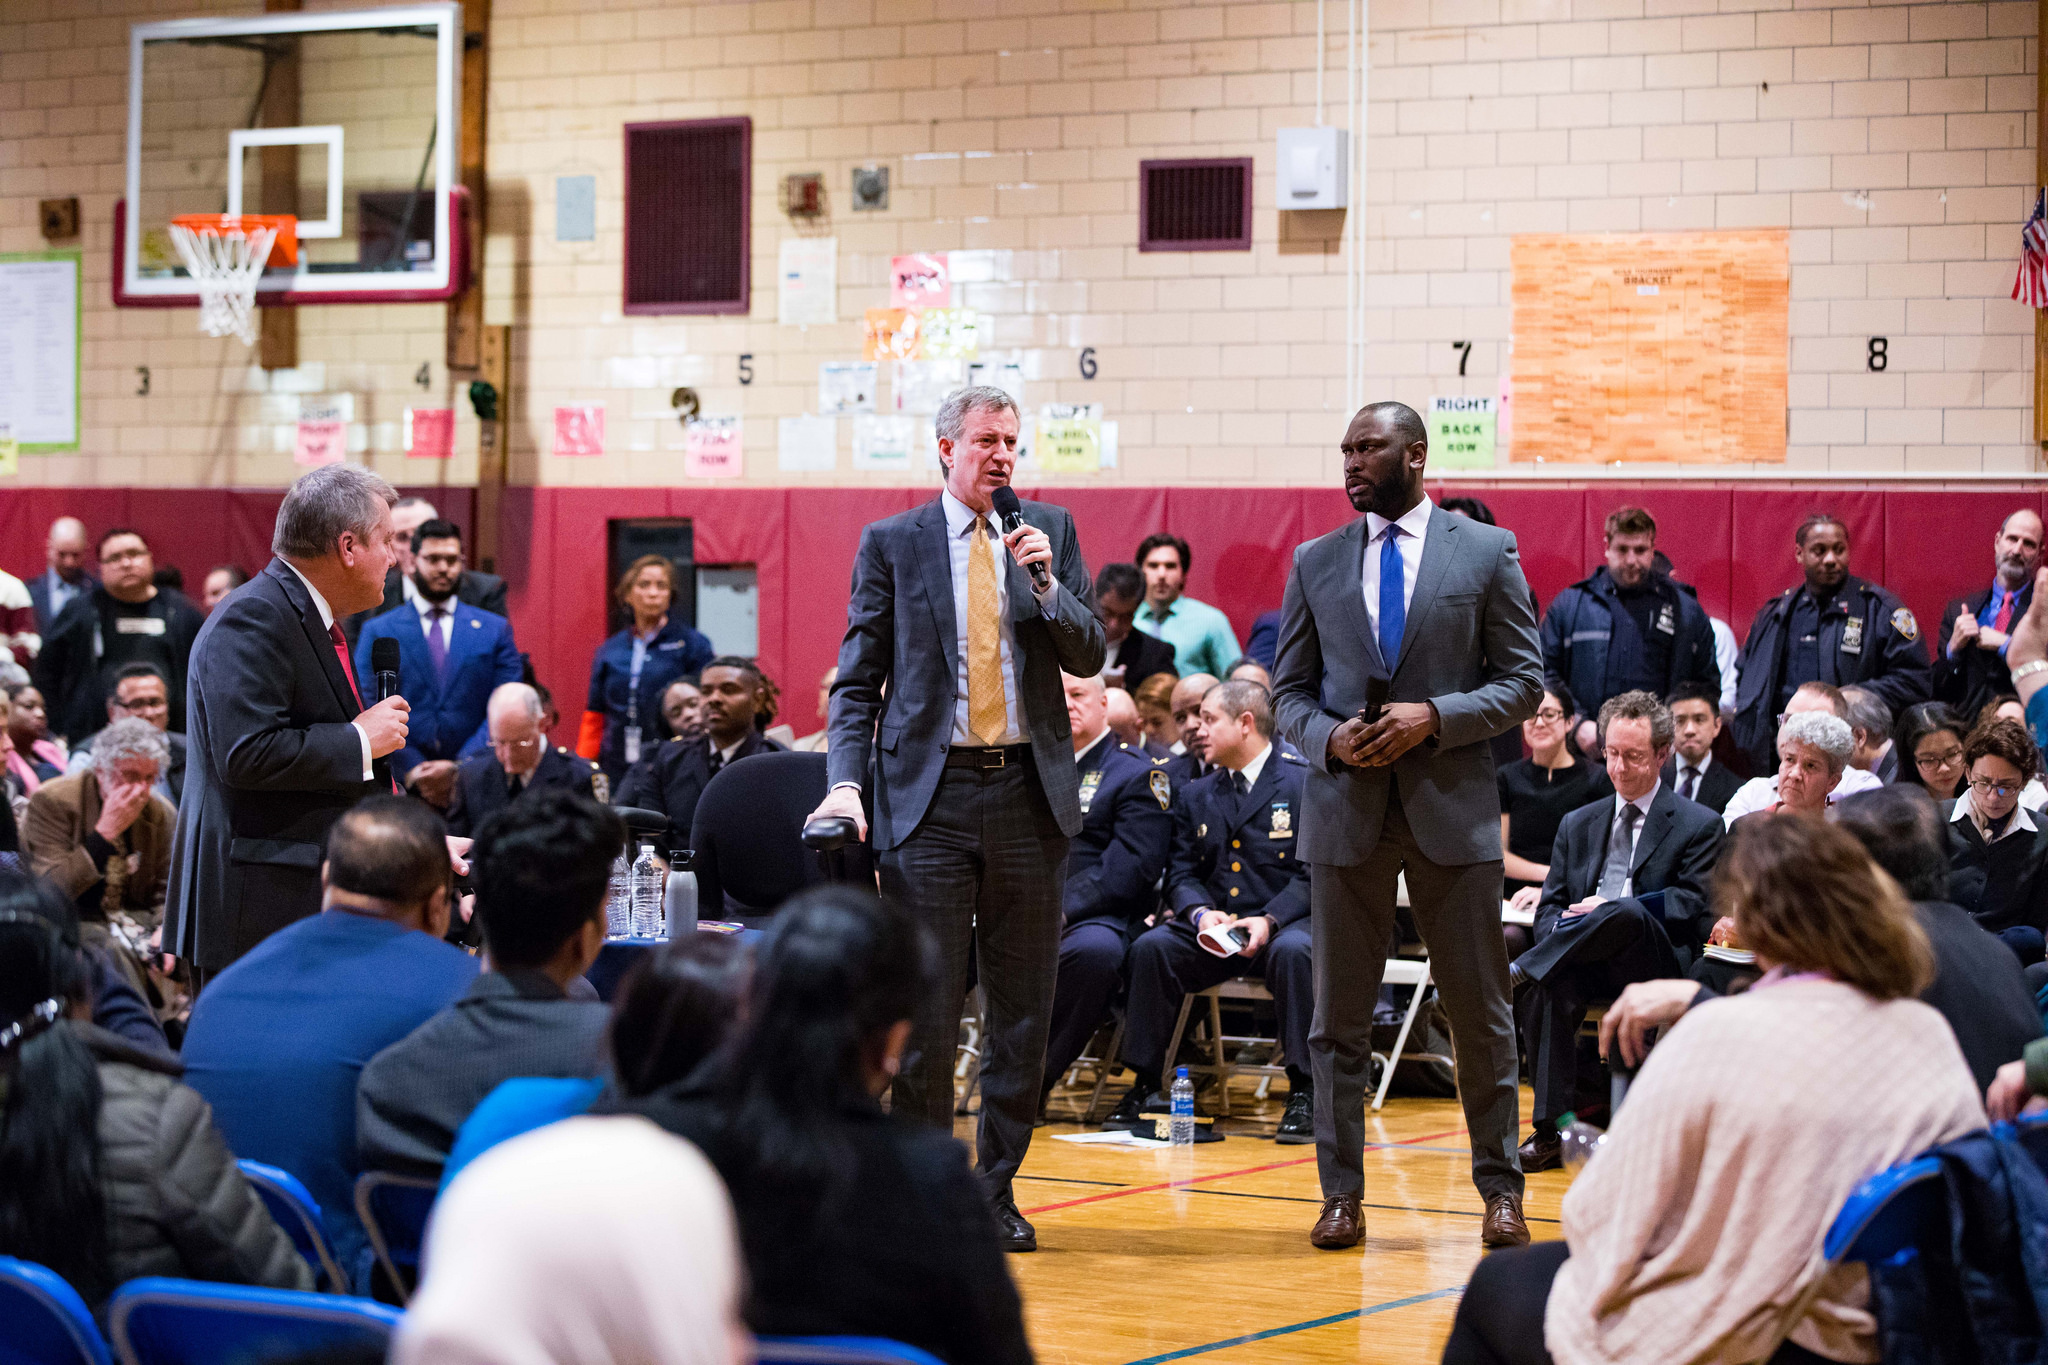 De Blasio announces new school, upgrades at Jackson Heights town hall meeting